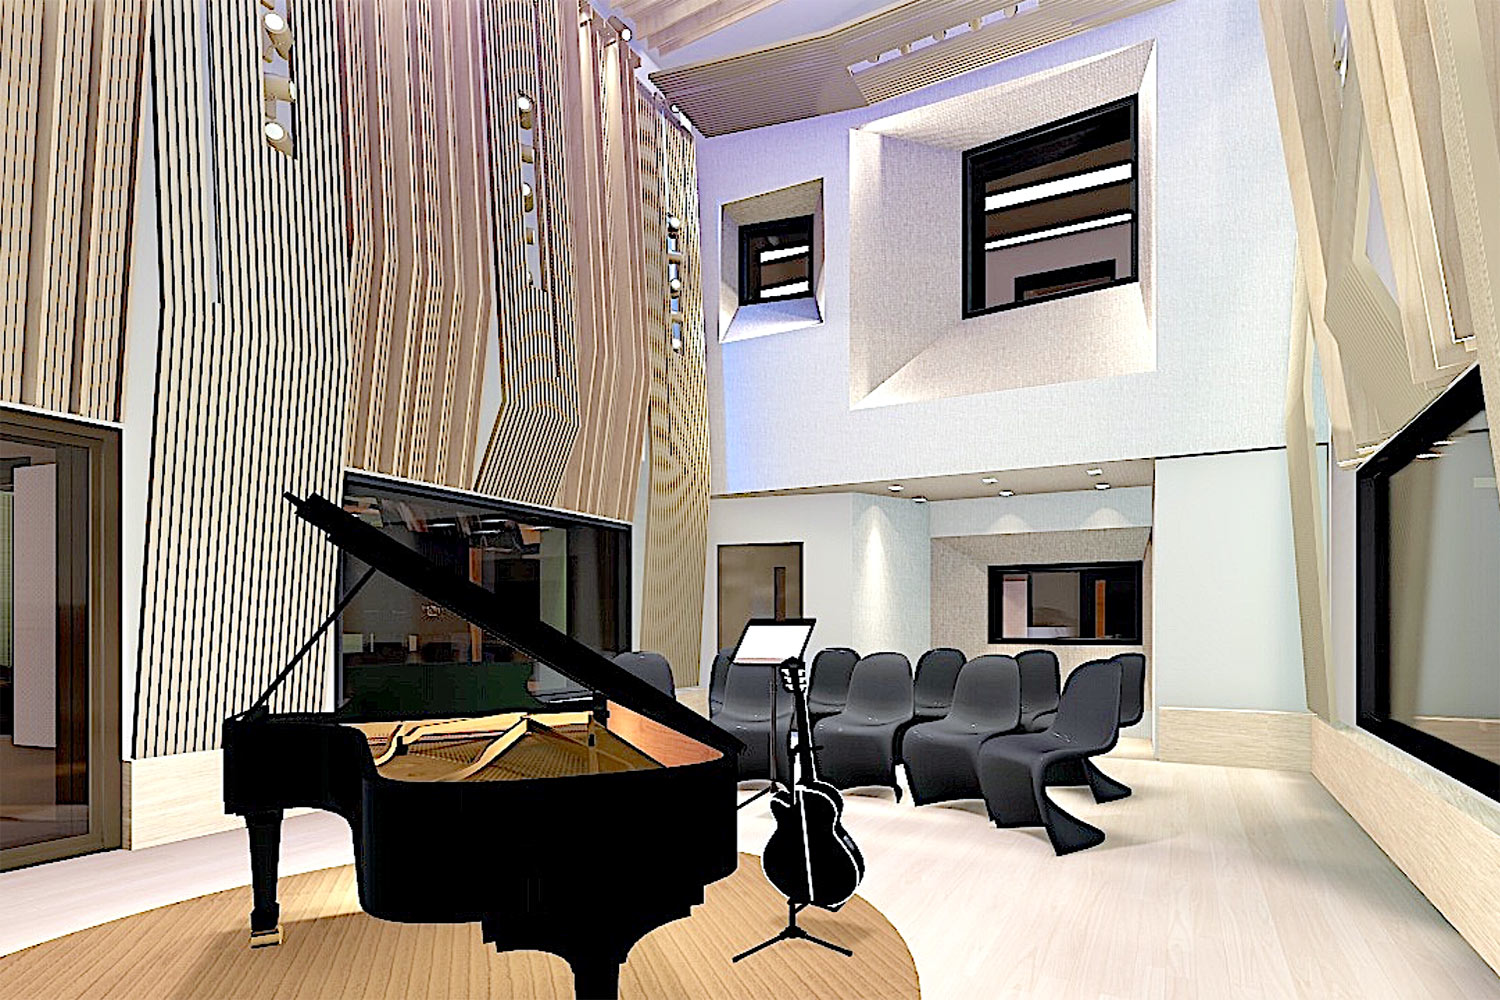 Universidad ICESI in Cali, Colombia commissioned WSDG to design their new music performance, composition and production building with world-class recording studios. Live Room Render 1.